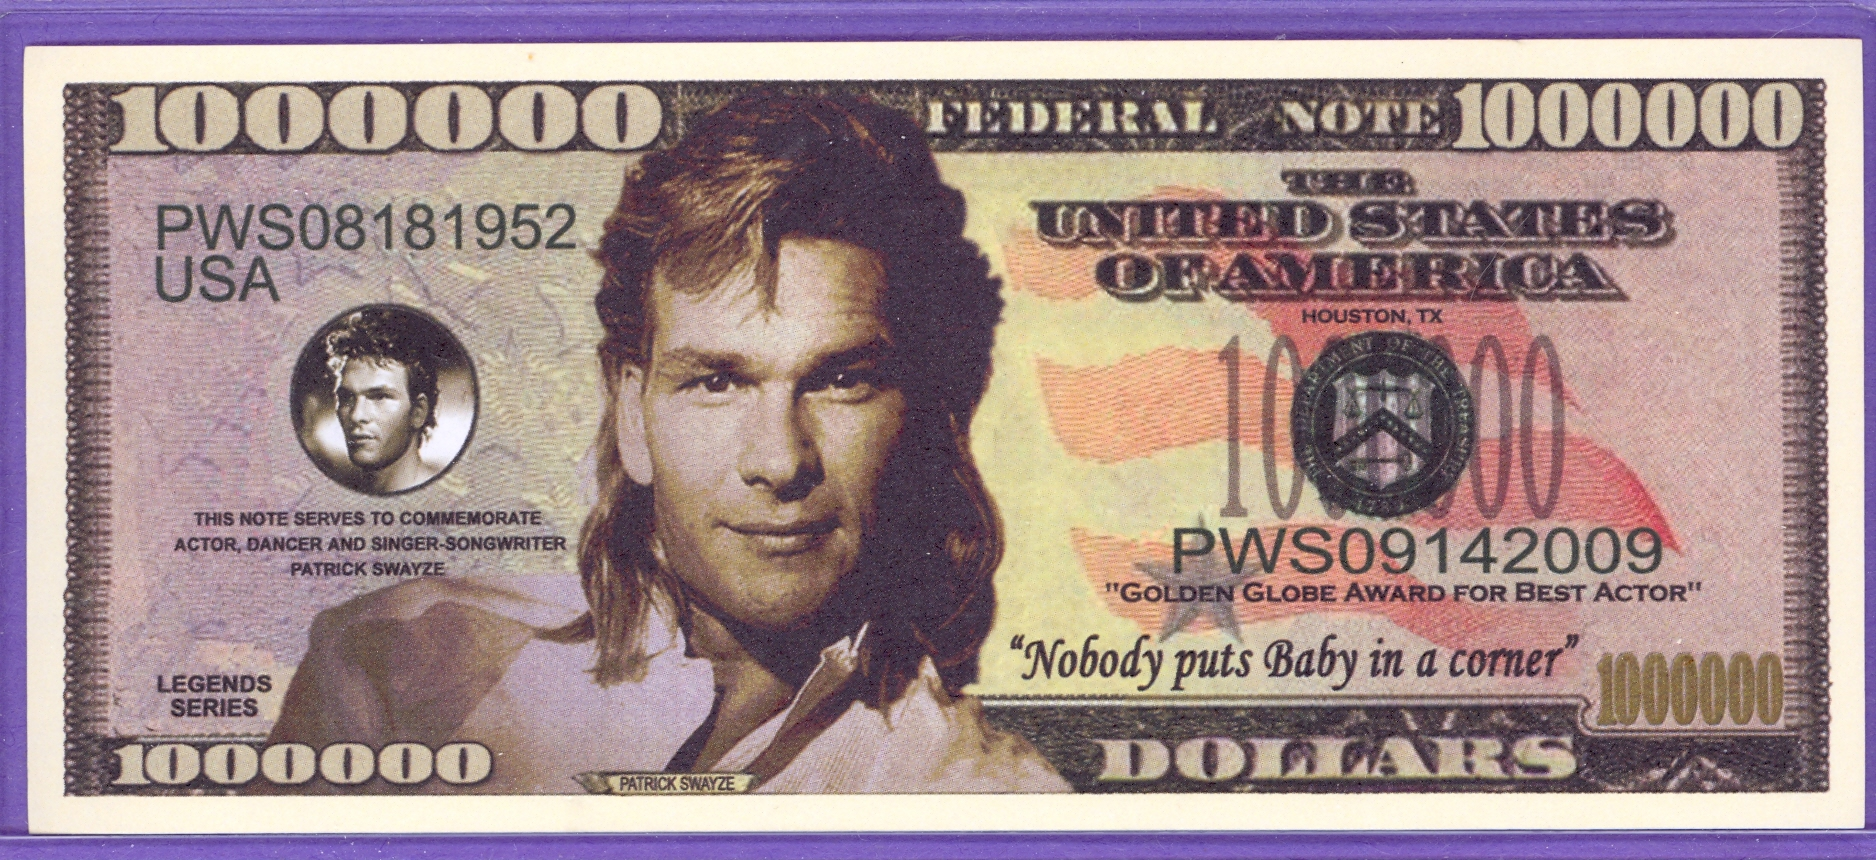 Patrick Swayze Million Dollar Note